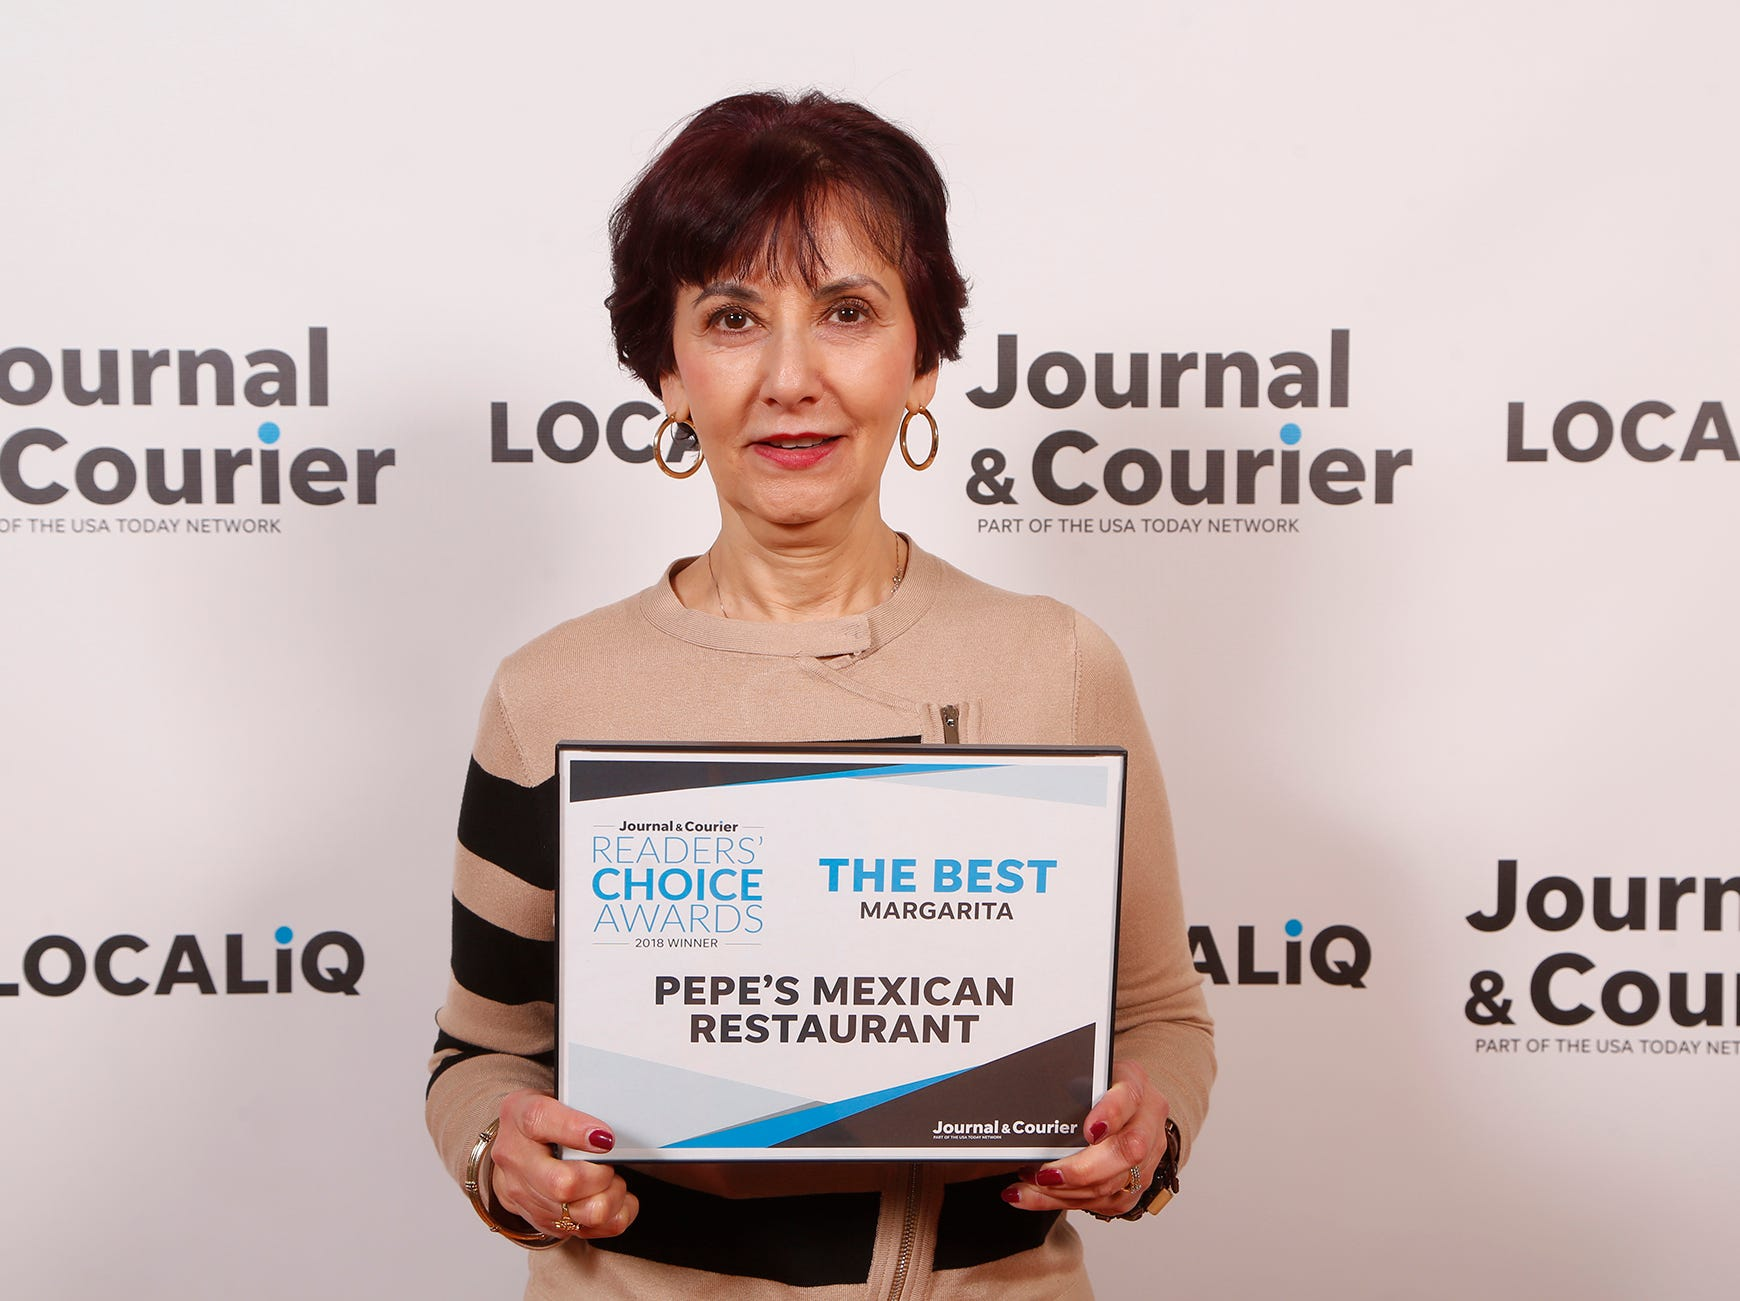 Pepe's Mexican Restaurant, Journal & Courier Readers' Choice Awards winner for the best margarita.